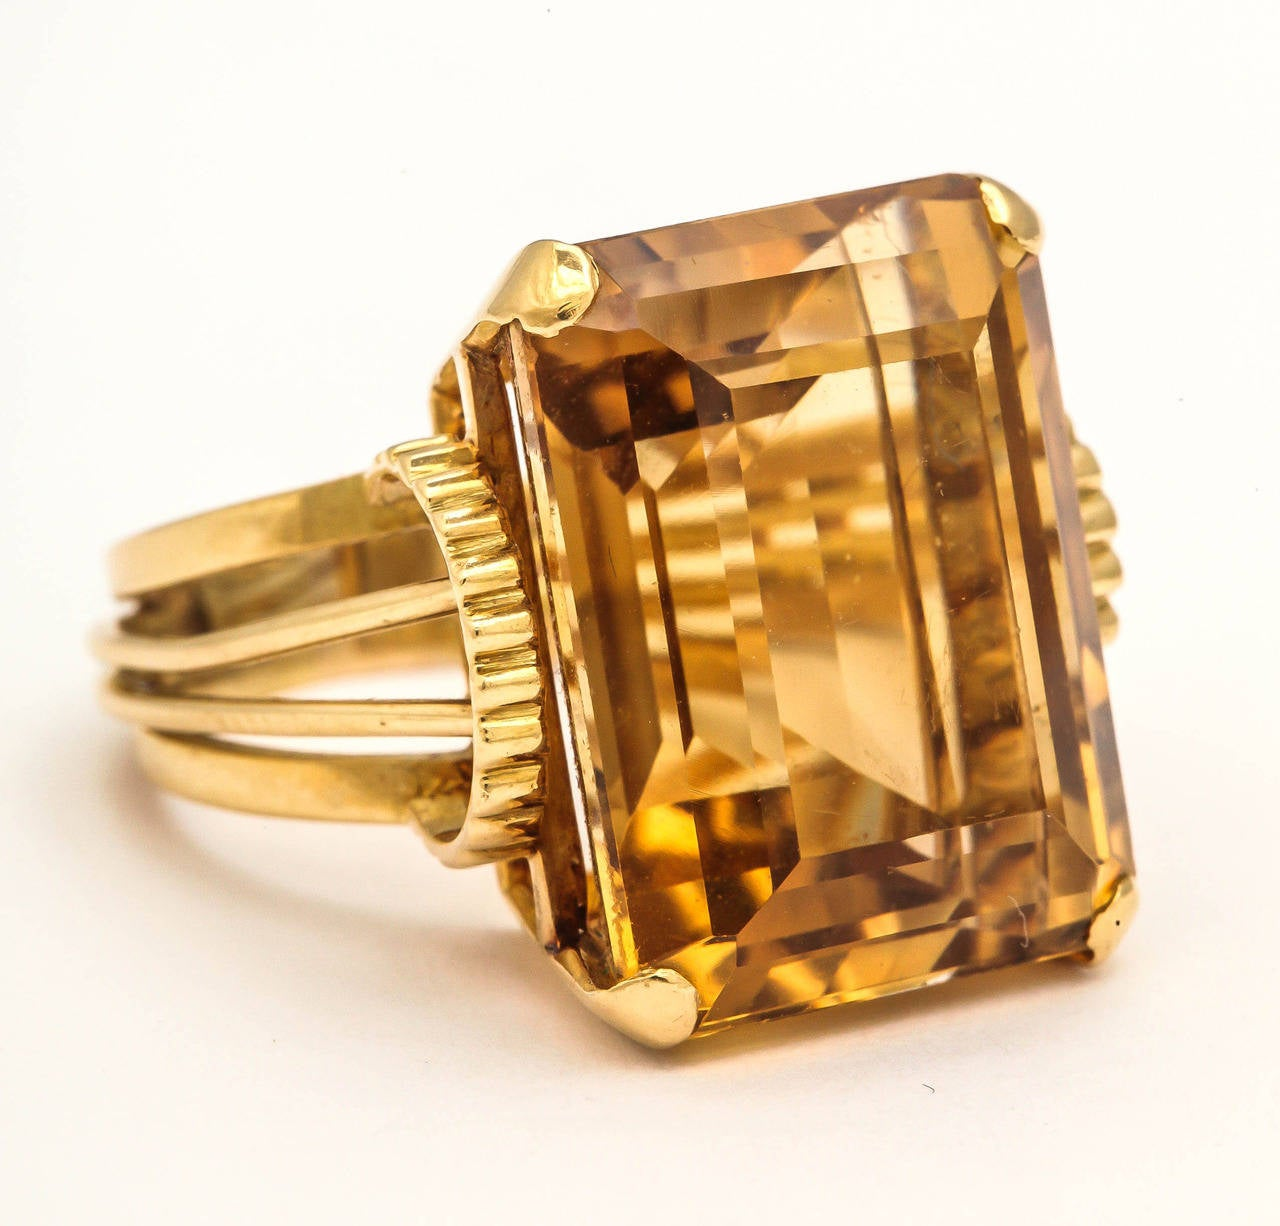 English Retro Citrine 18k Gold Cocktail Ring, 1950s For Sale 4